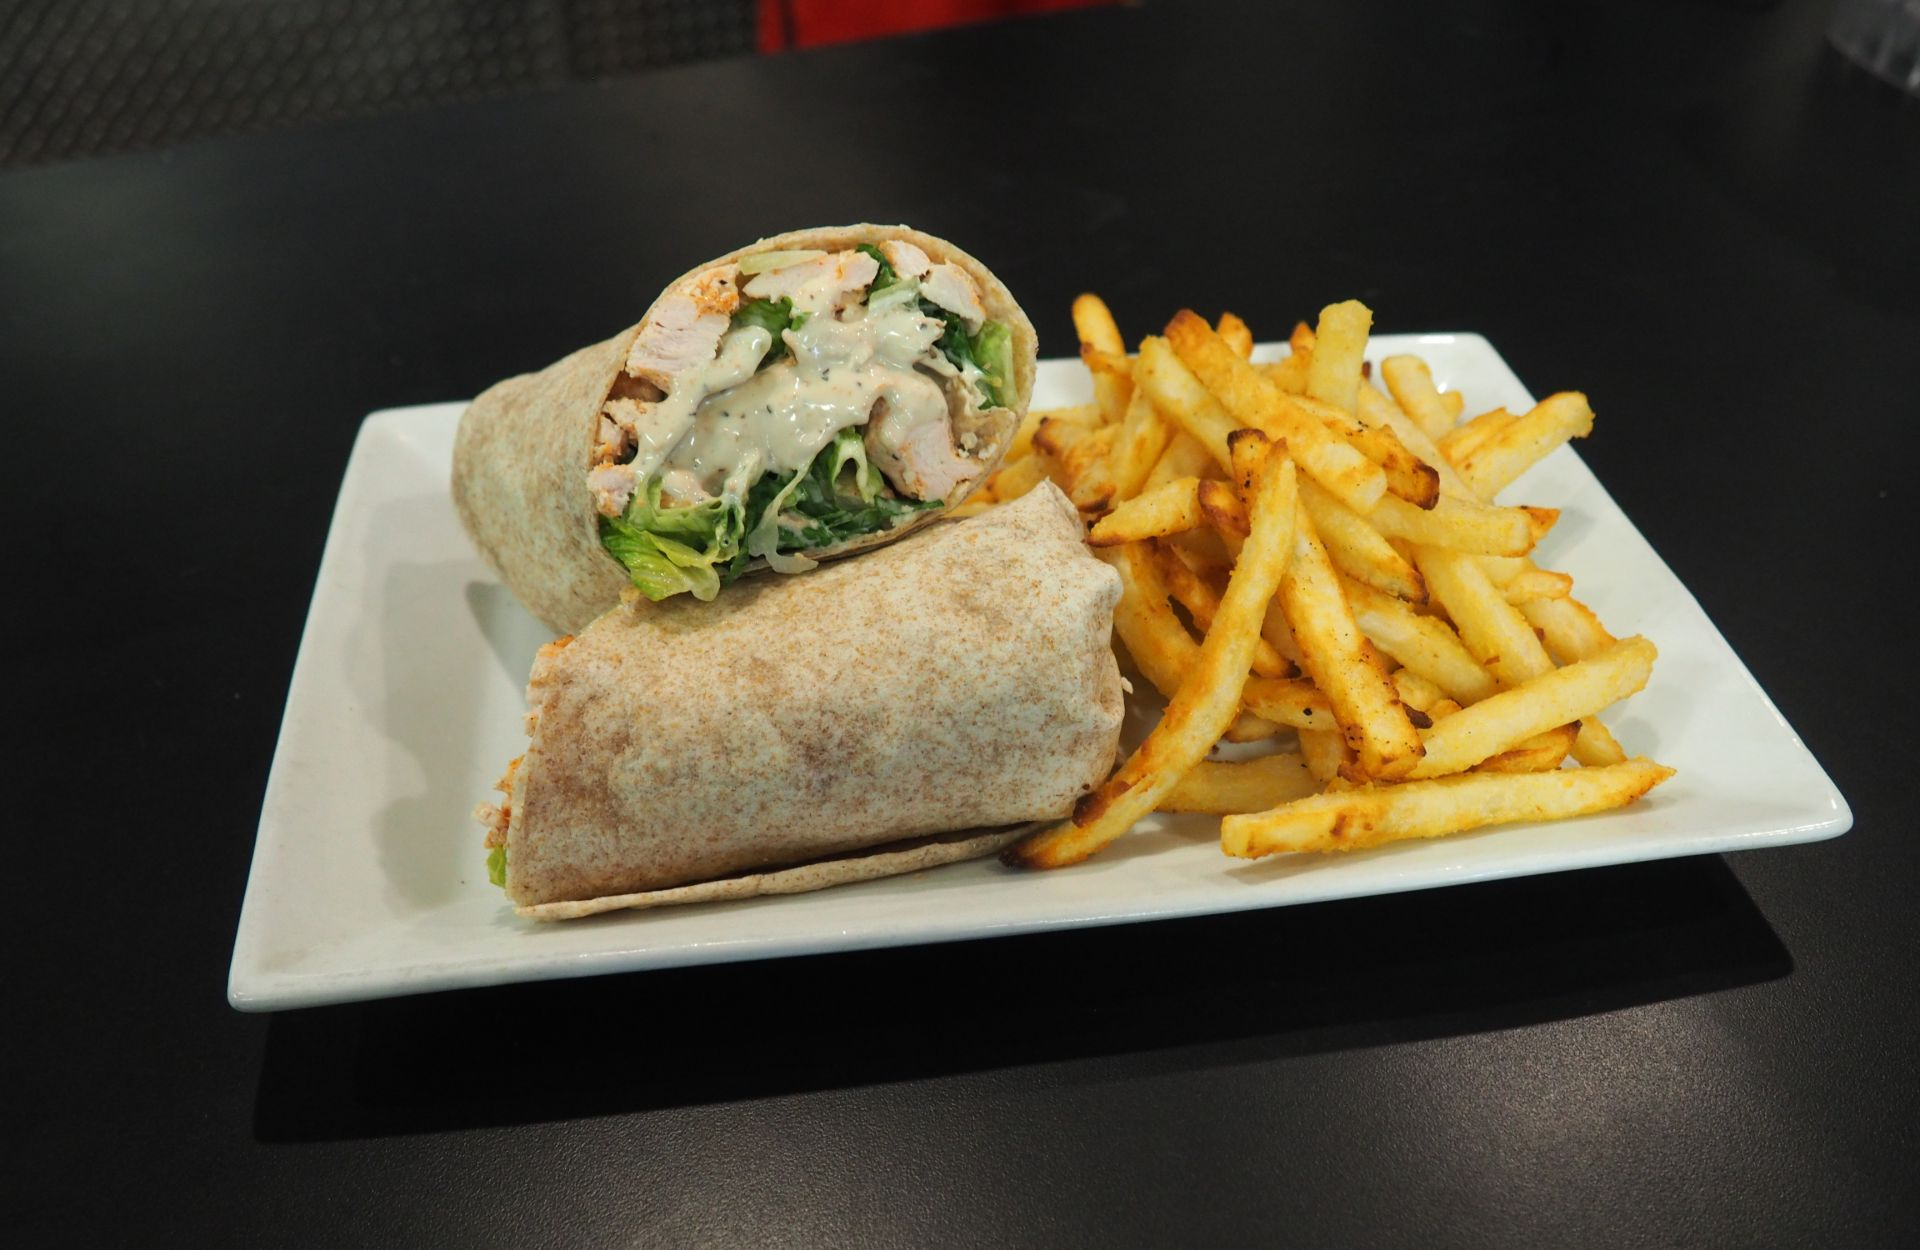 Grilled chicken Caesar wrap with French fries